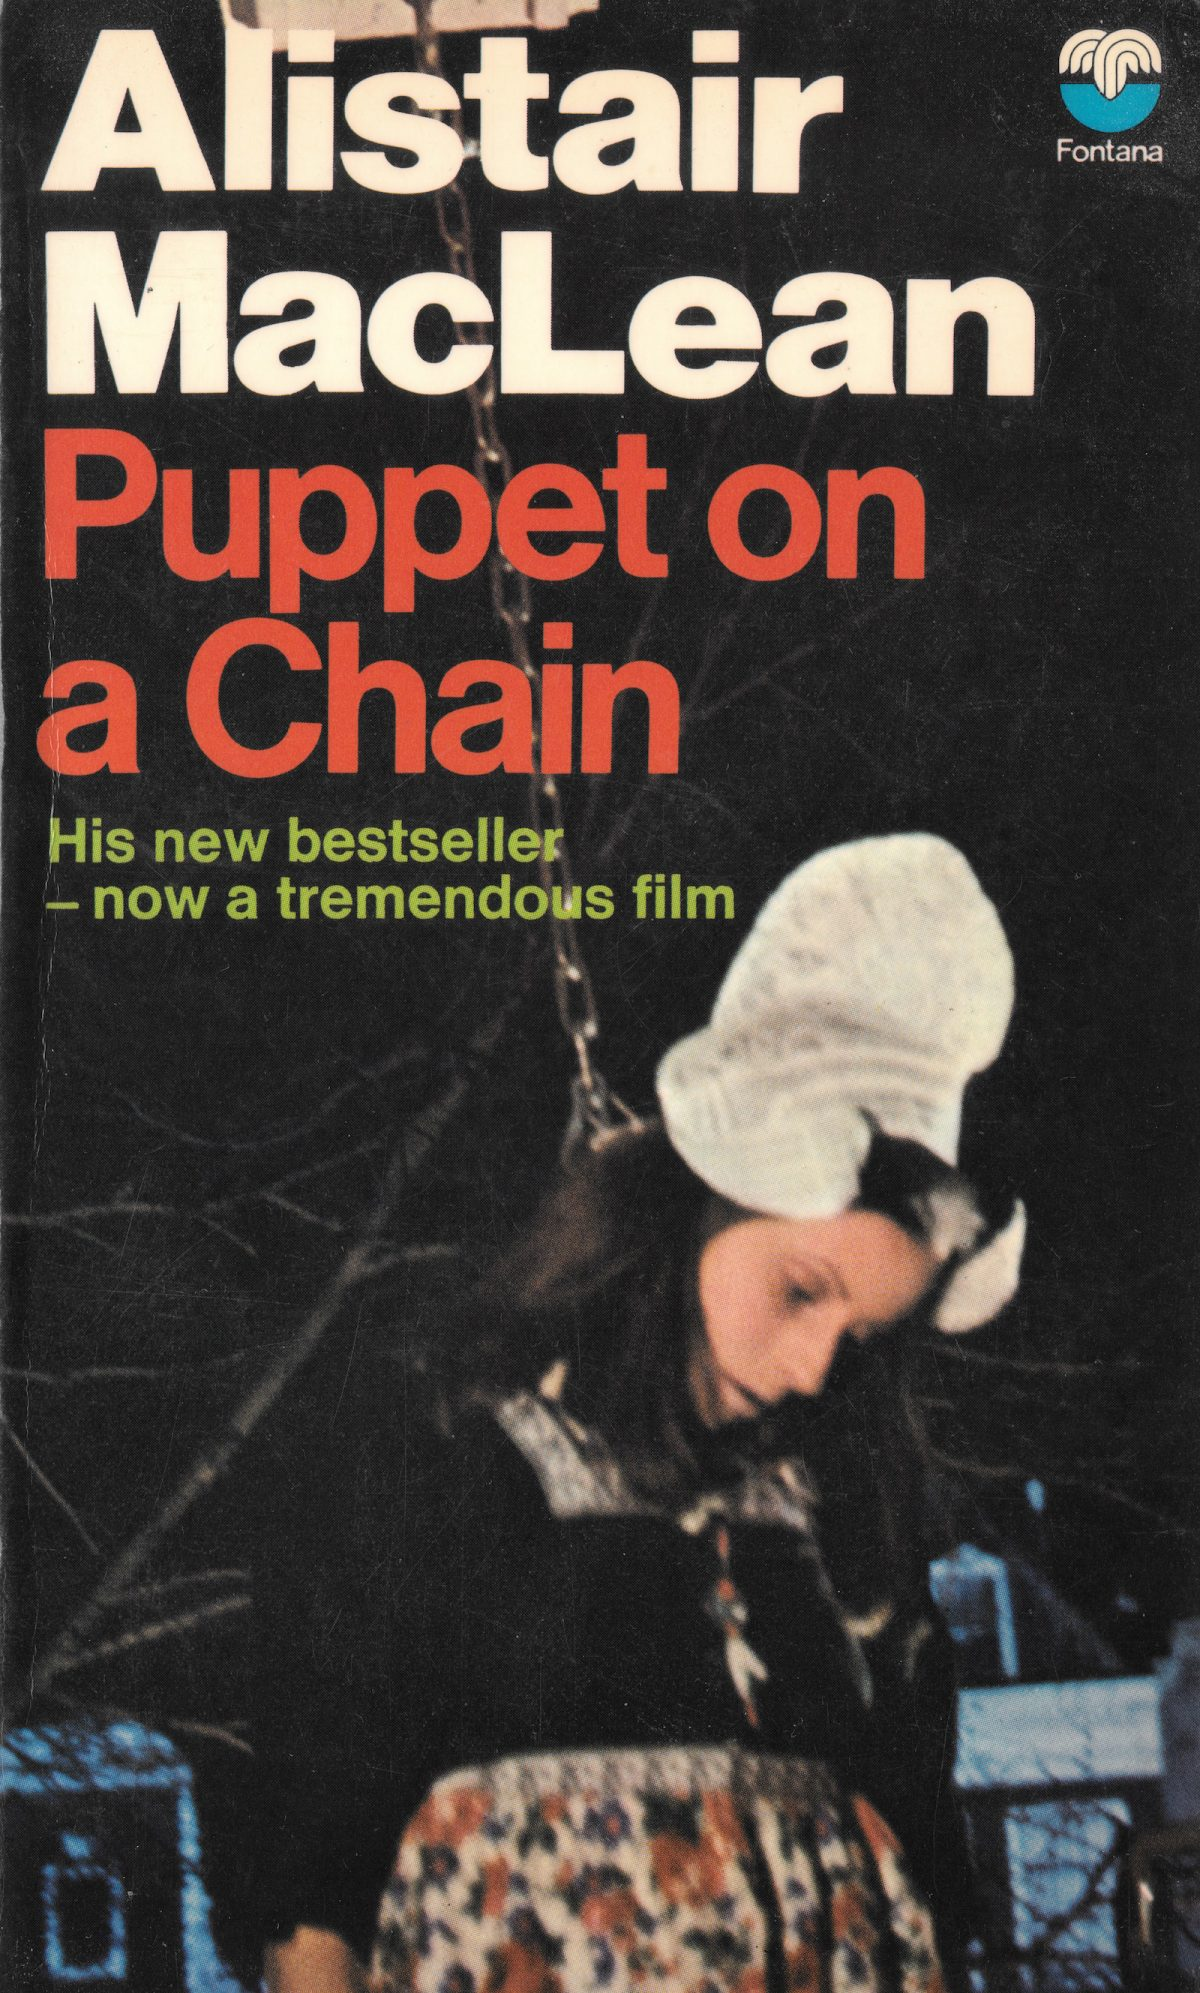 Alistair MacLean, Puppet on a Chain, books